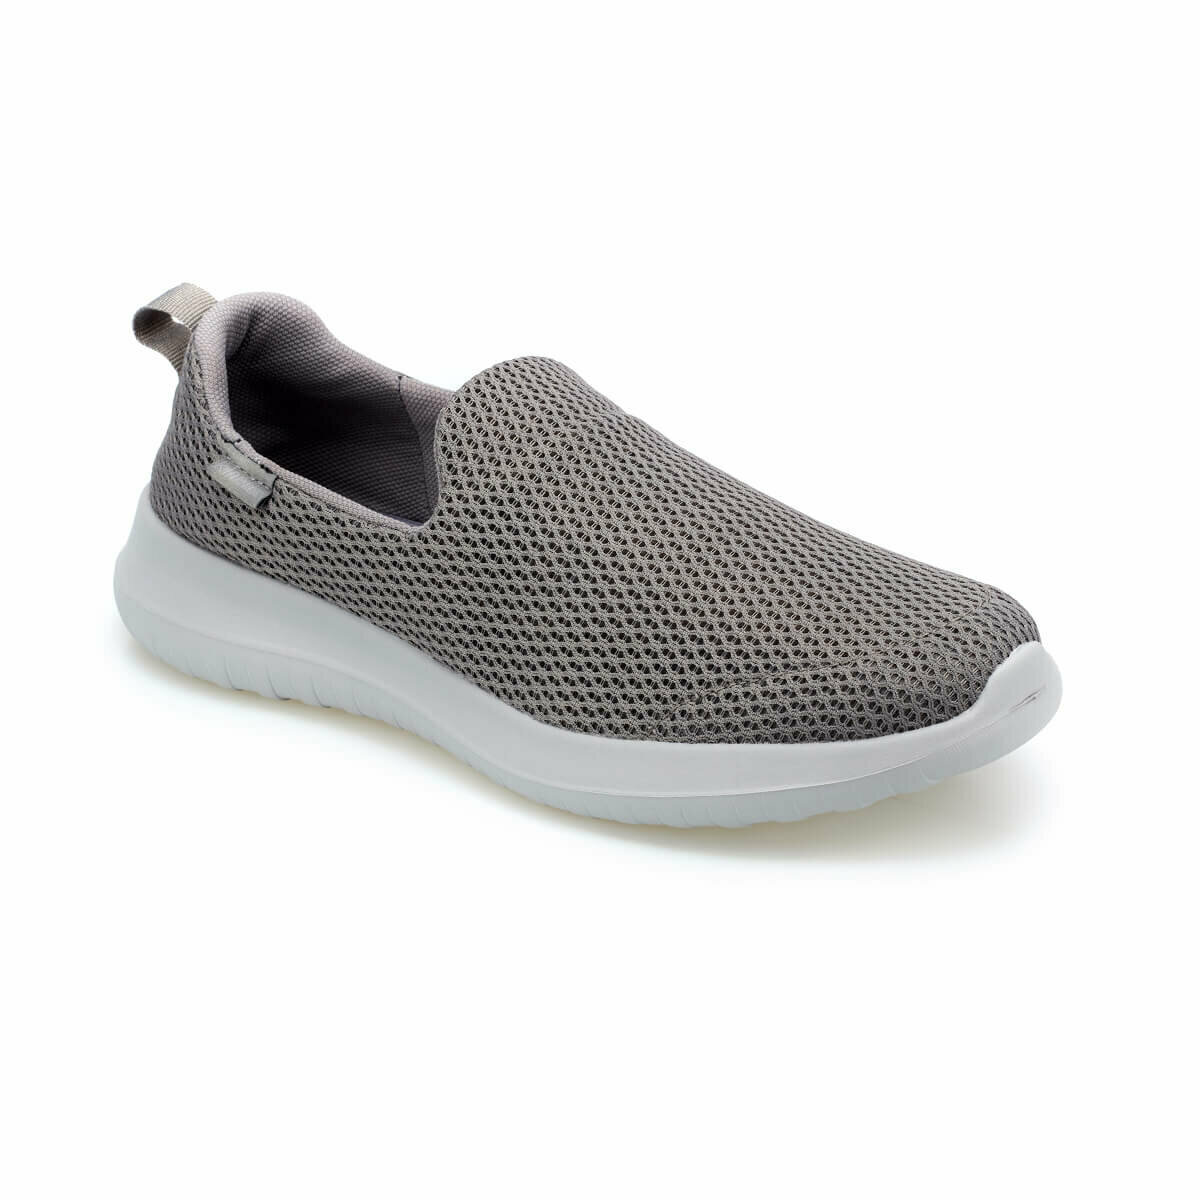 FLO FURY Gray Men 'S Comfort Shoes KINETIX